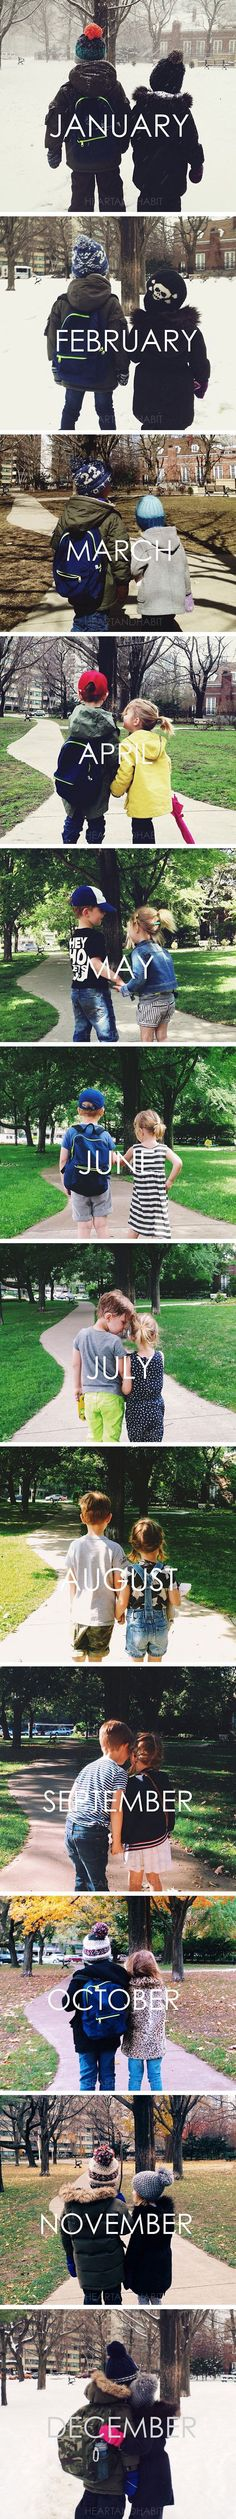 Sweet way to capture 1st year or marriage, children growing up, the possibilities....one pic each month in the same spot...